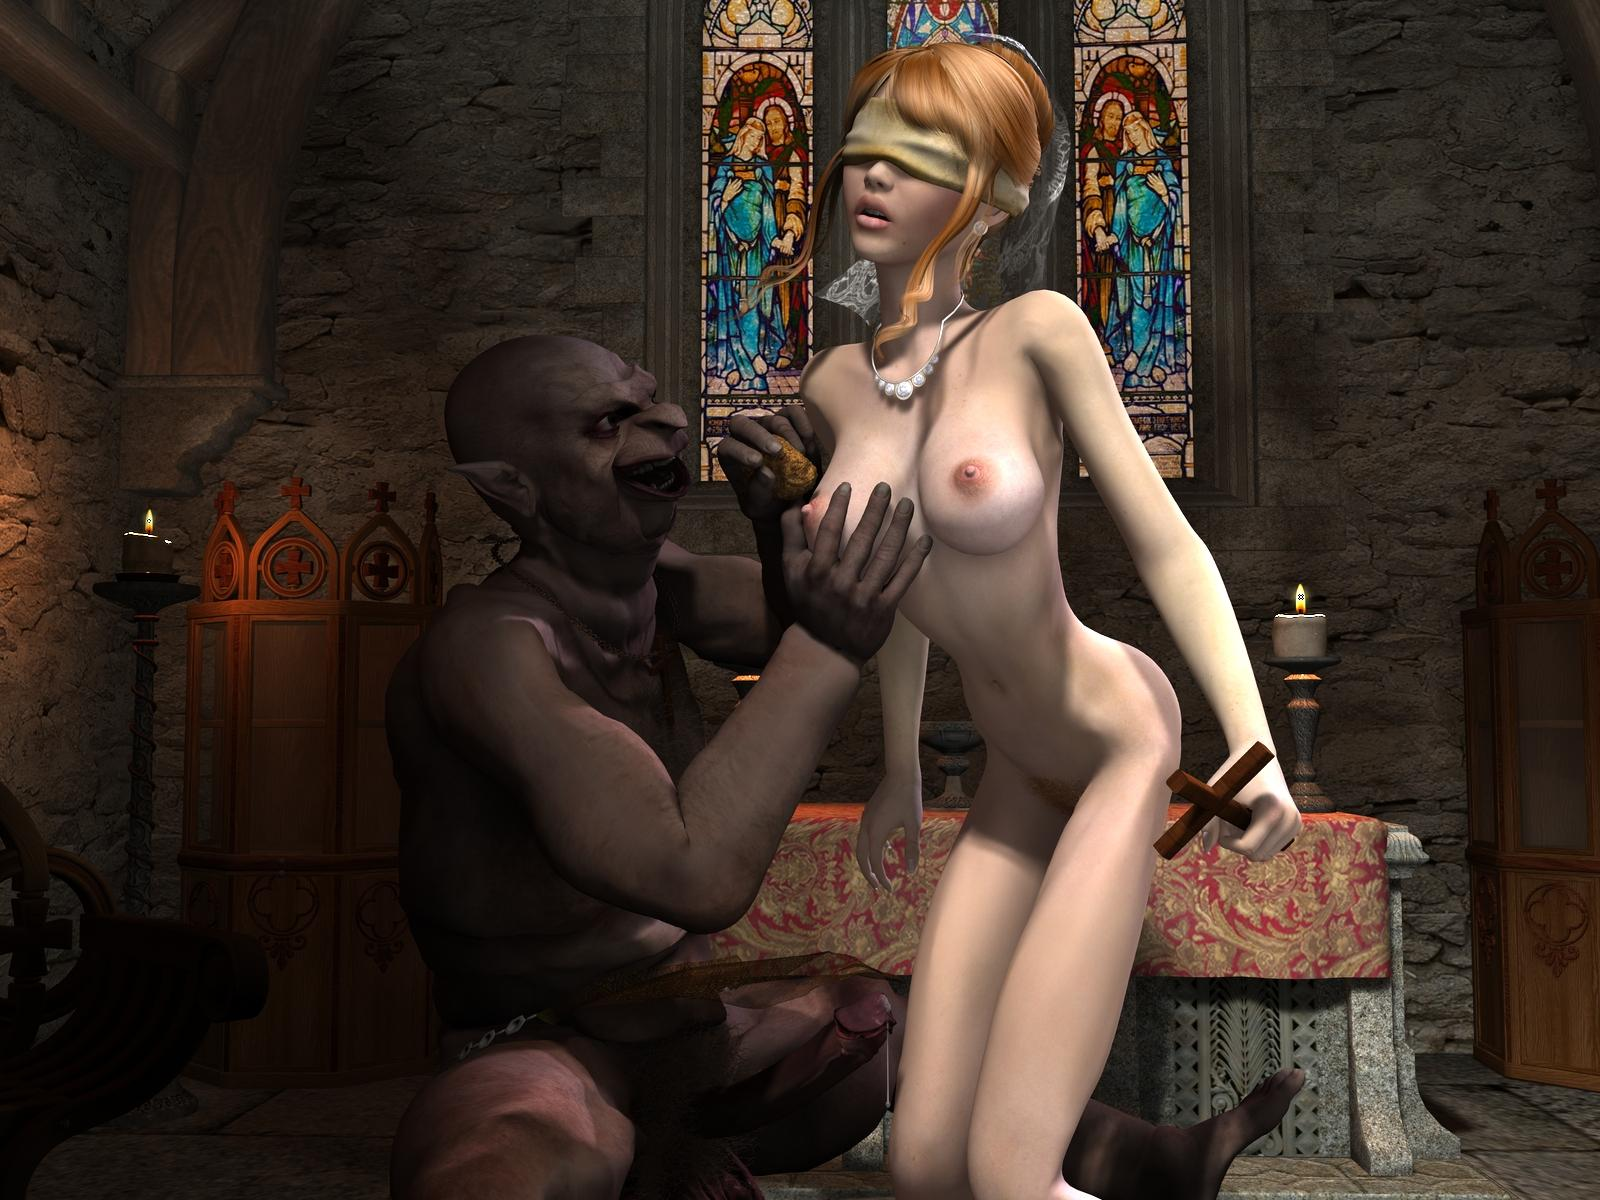 3d goblin priest fucks girl pics exposed scene